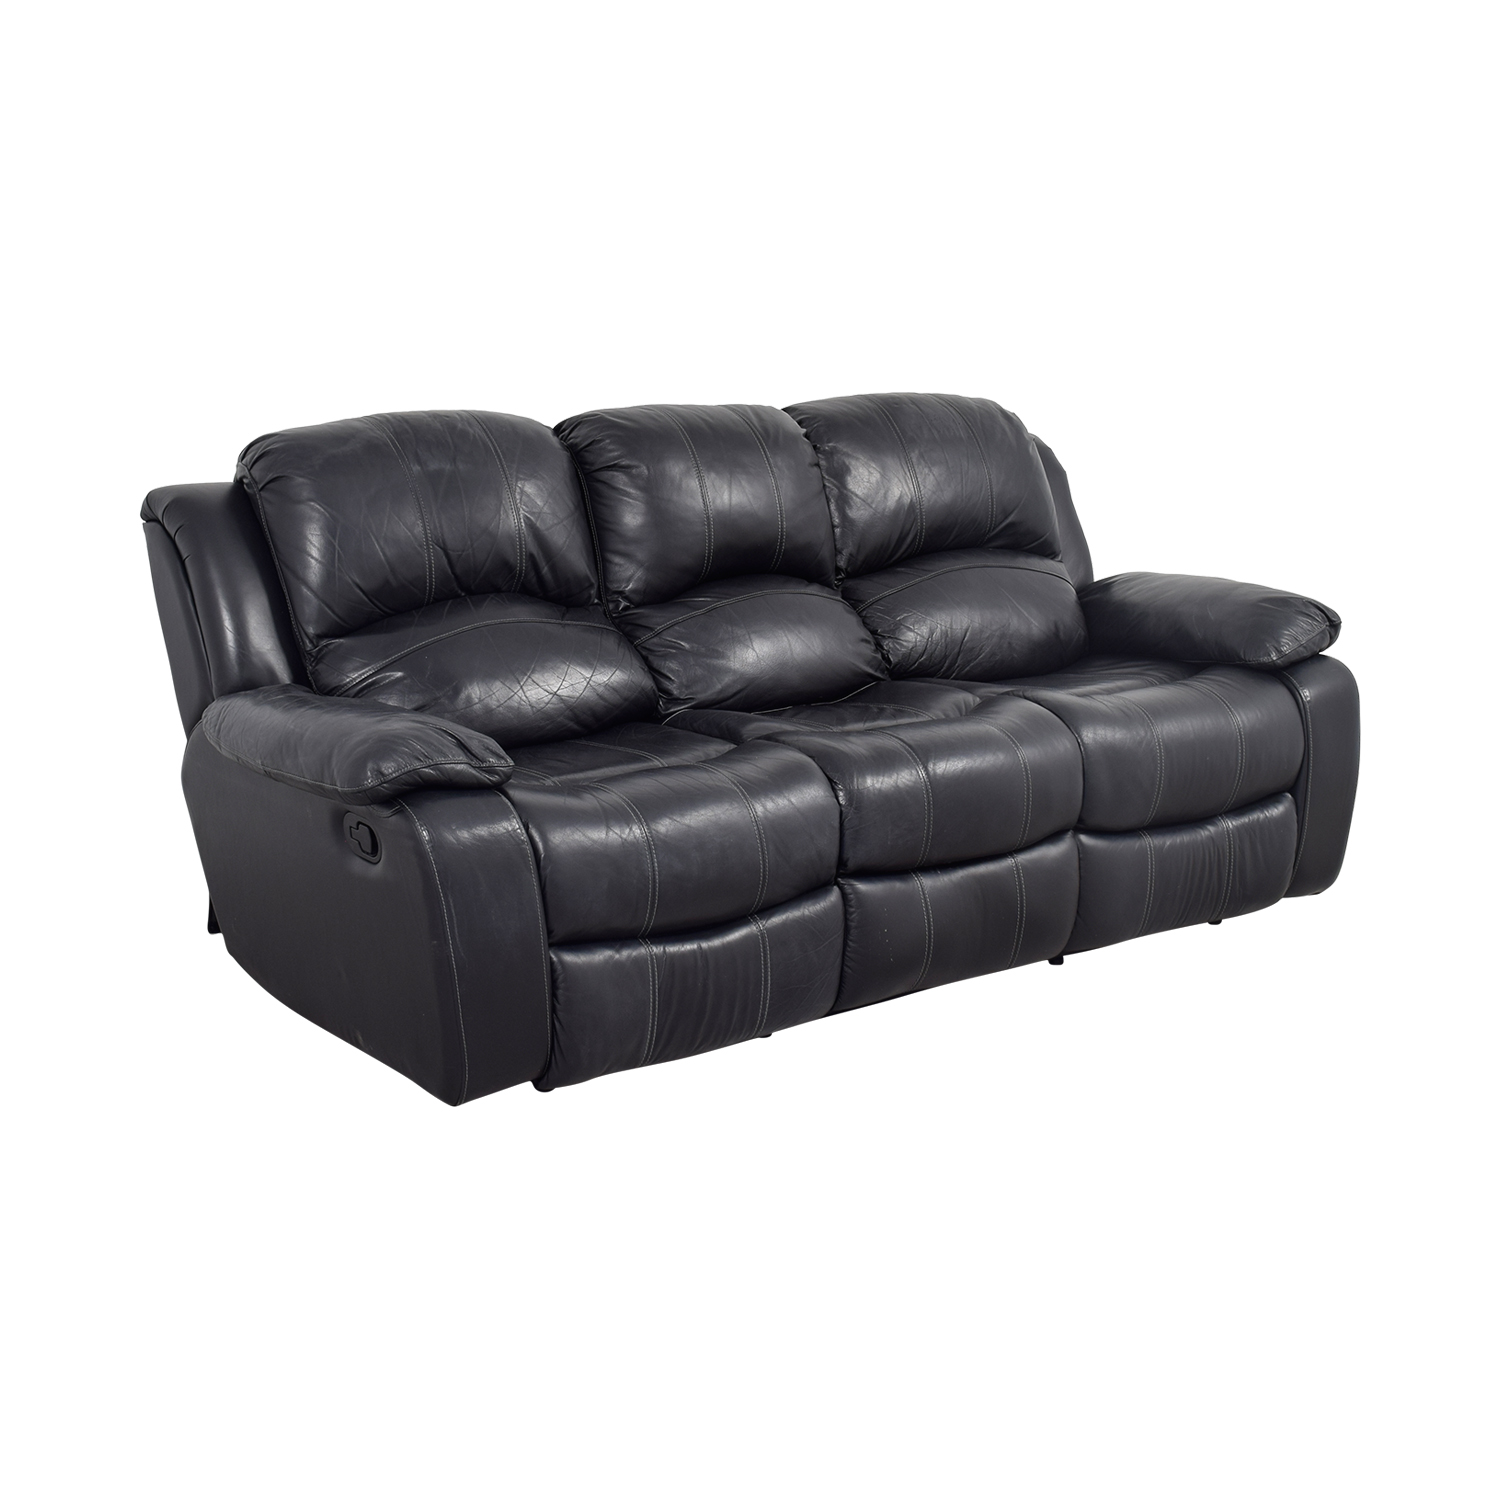 Cheap Recliner Sofas For Sale Black Leather Reclining: Black Leather Reclining Sofa / Sofas